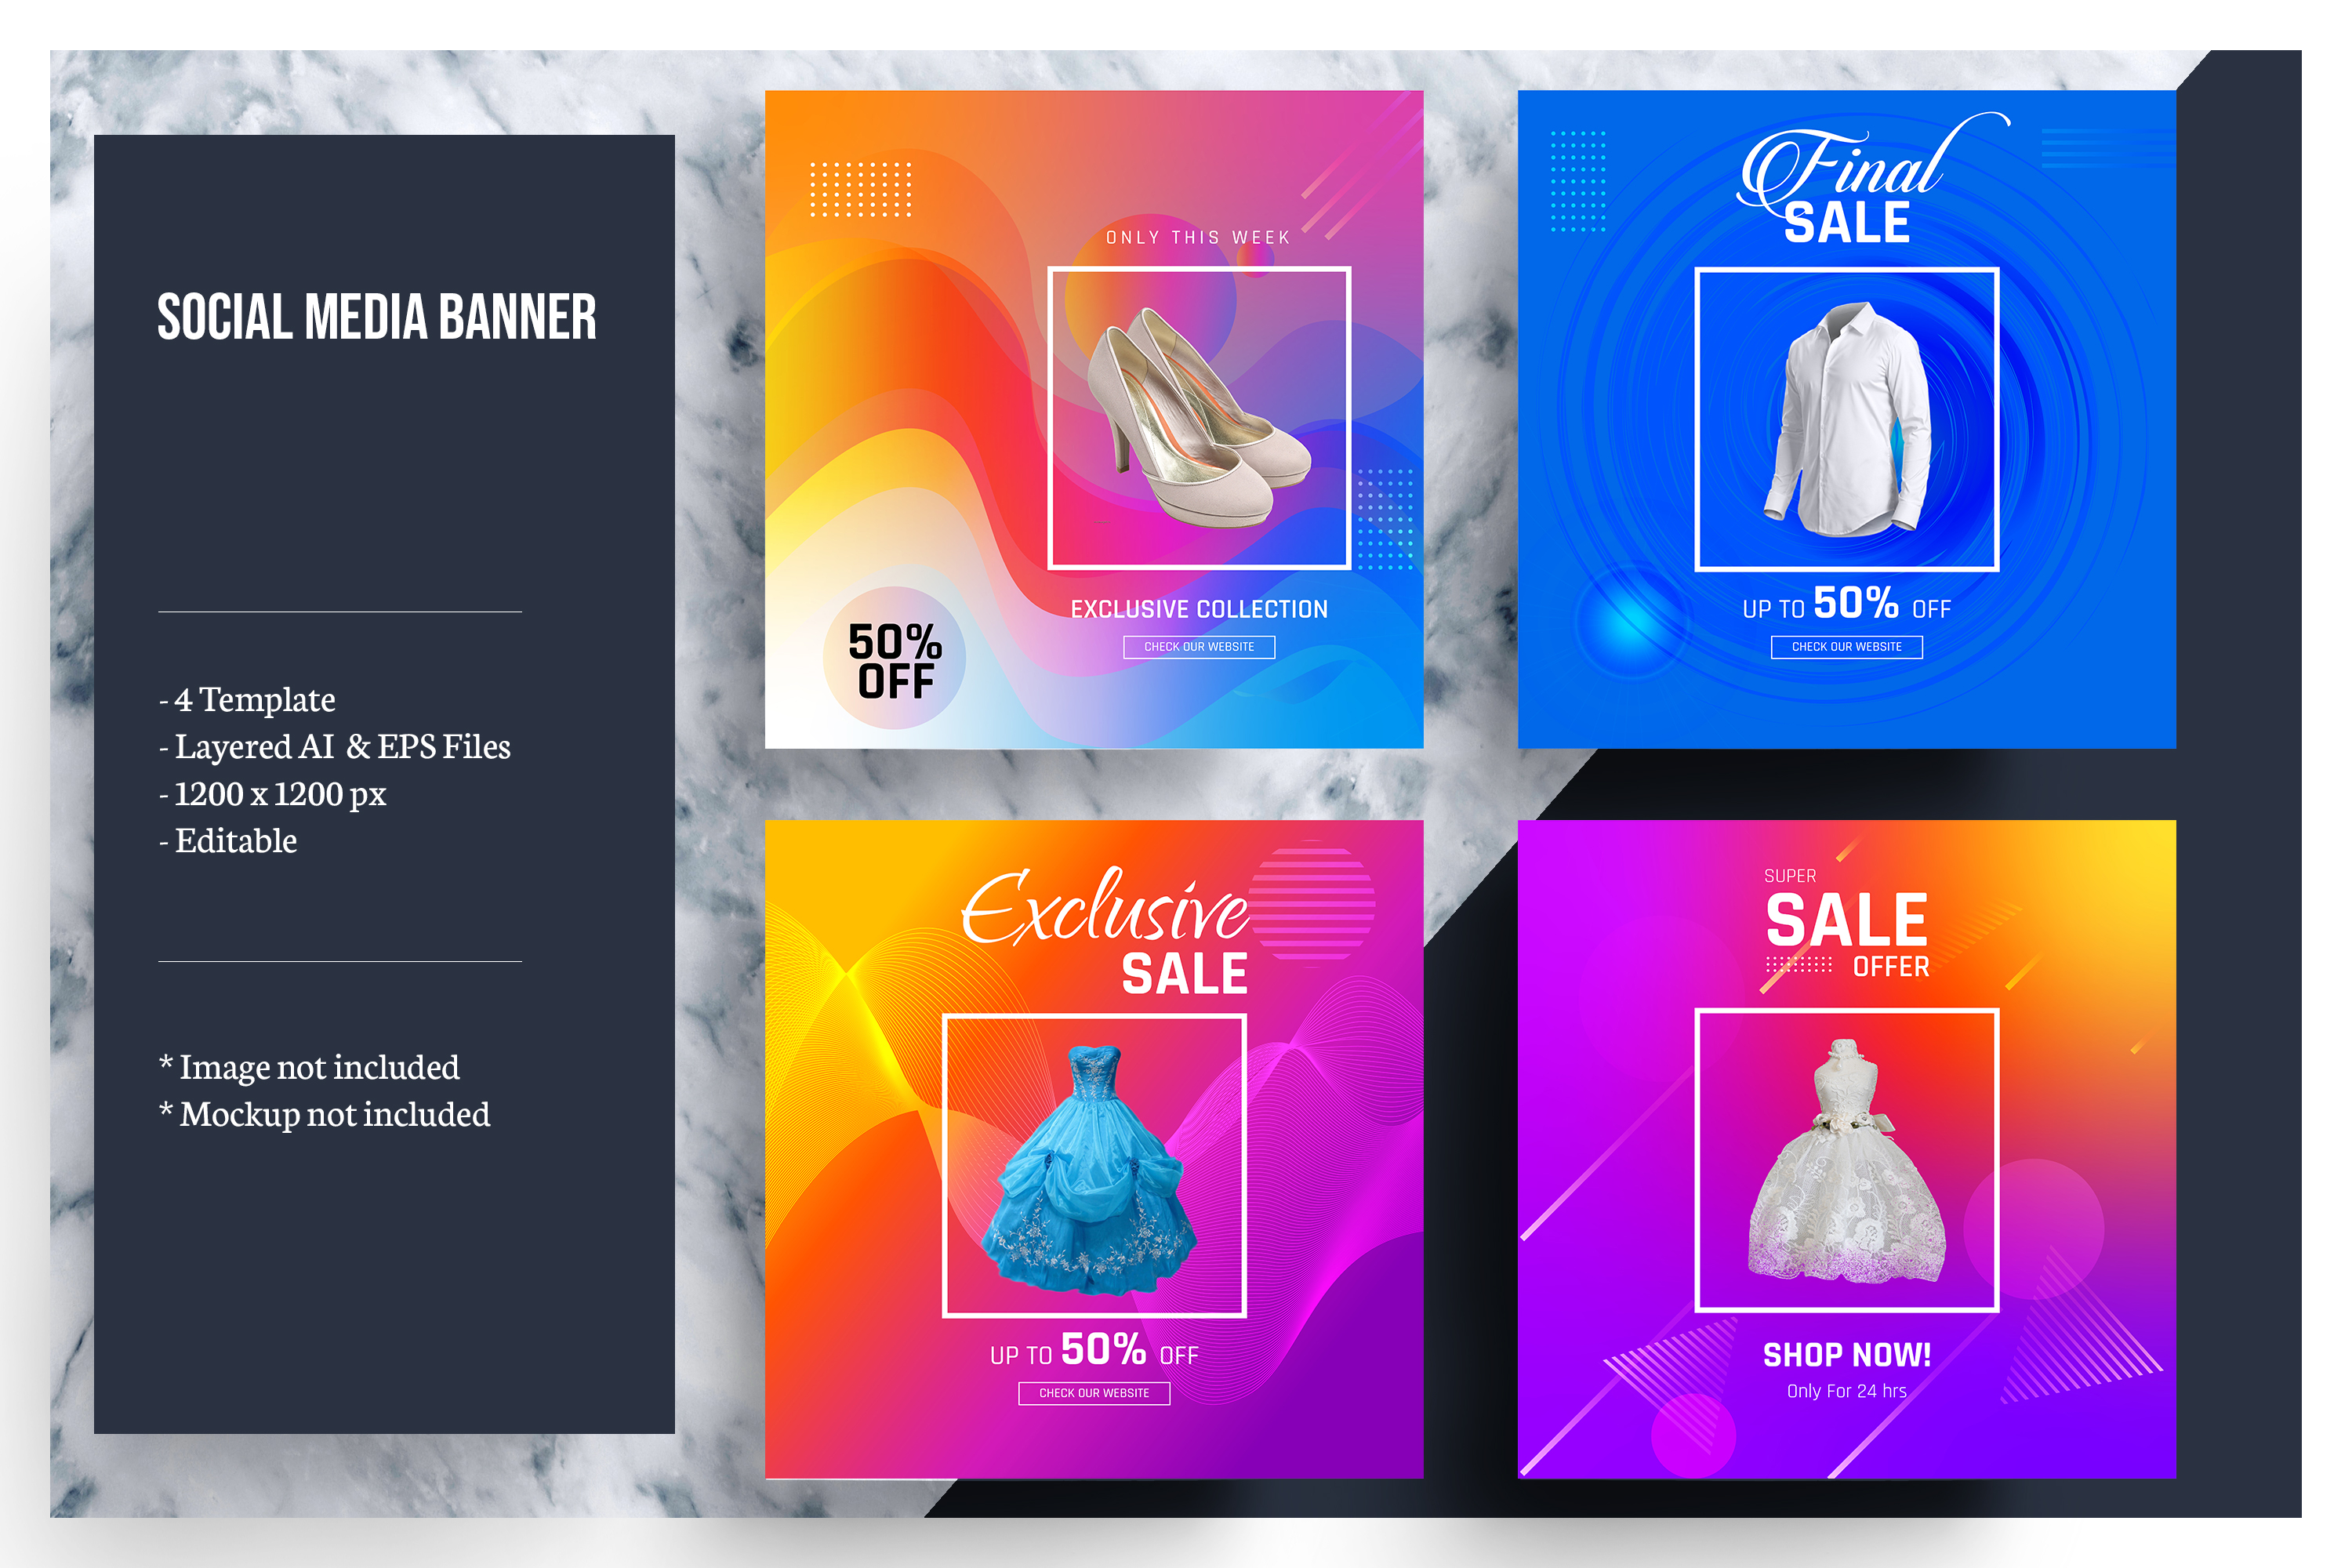 Colorful Social Media Banner Template example image 1